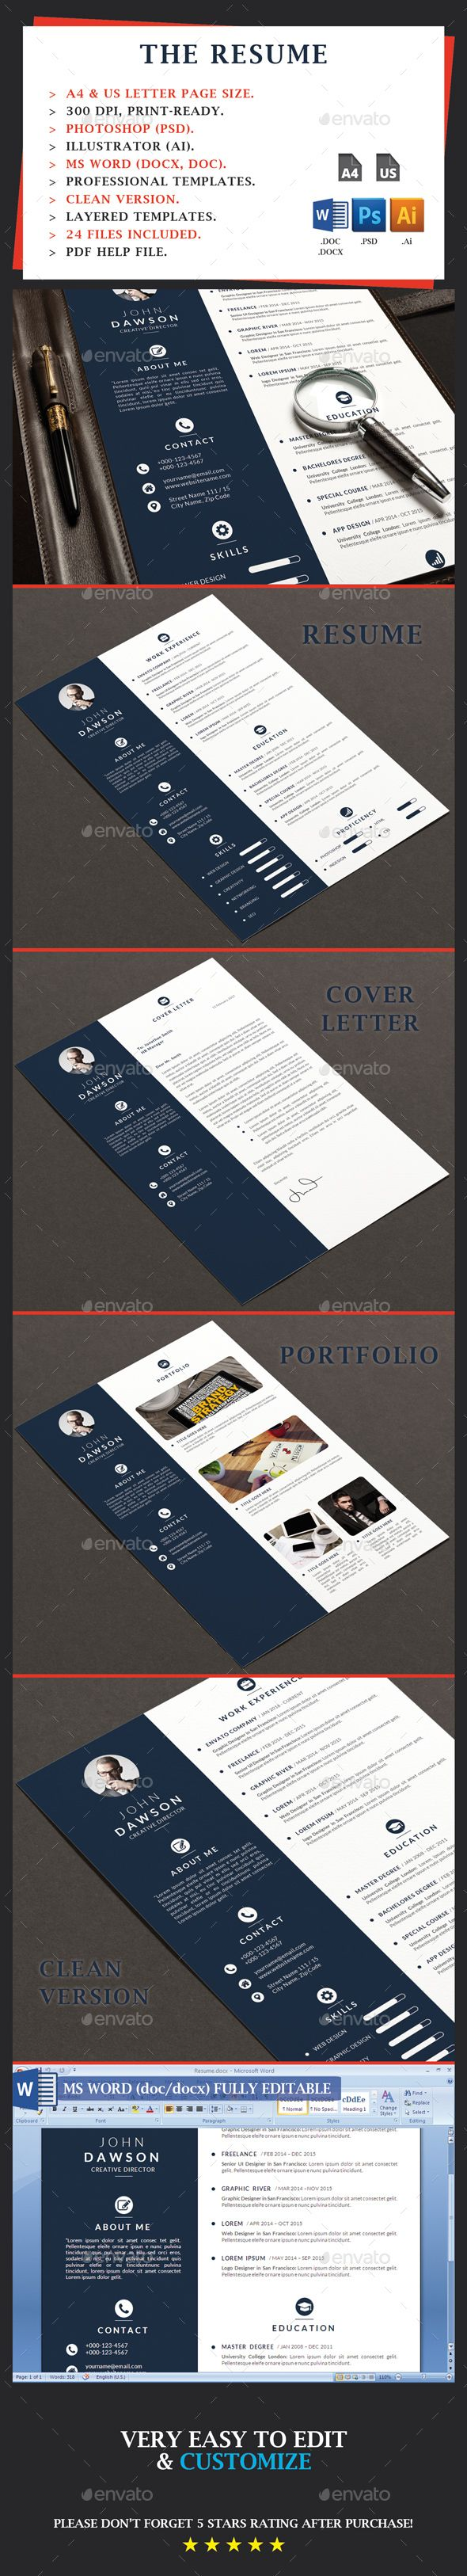 100+ [ Resume Template In Word 2003 ]   Word 2003 Resume Templates ...